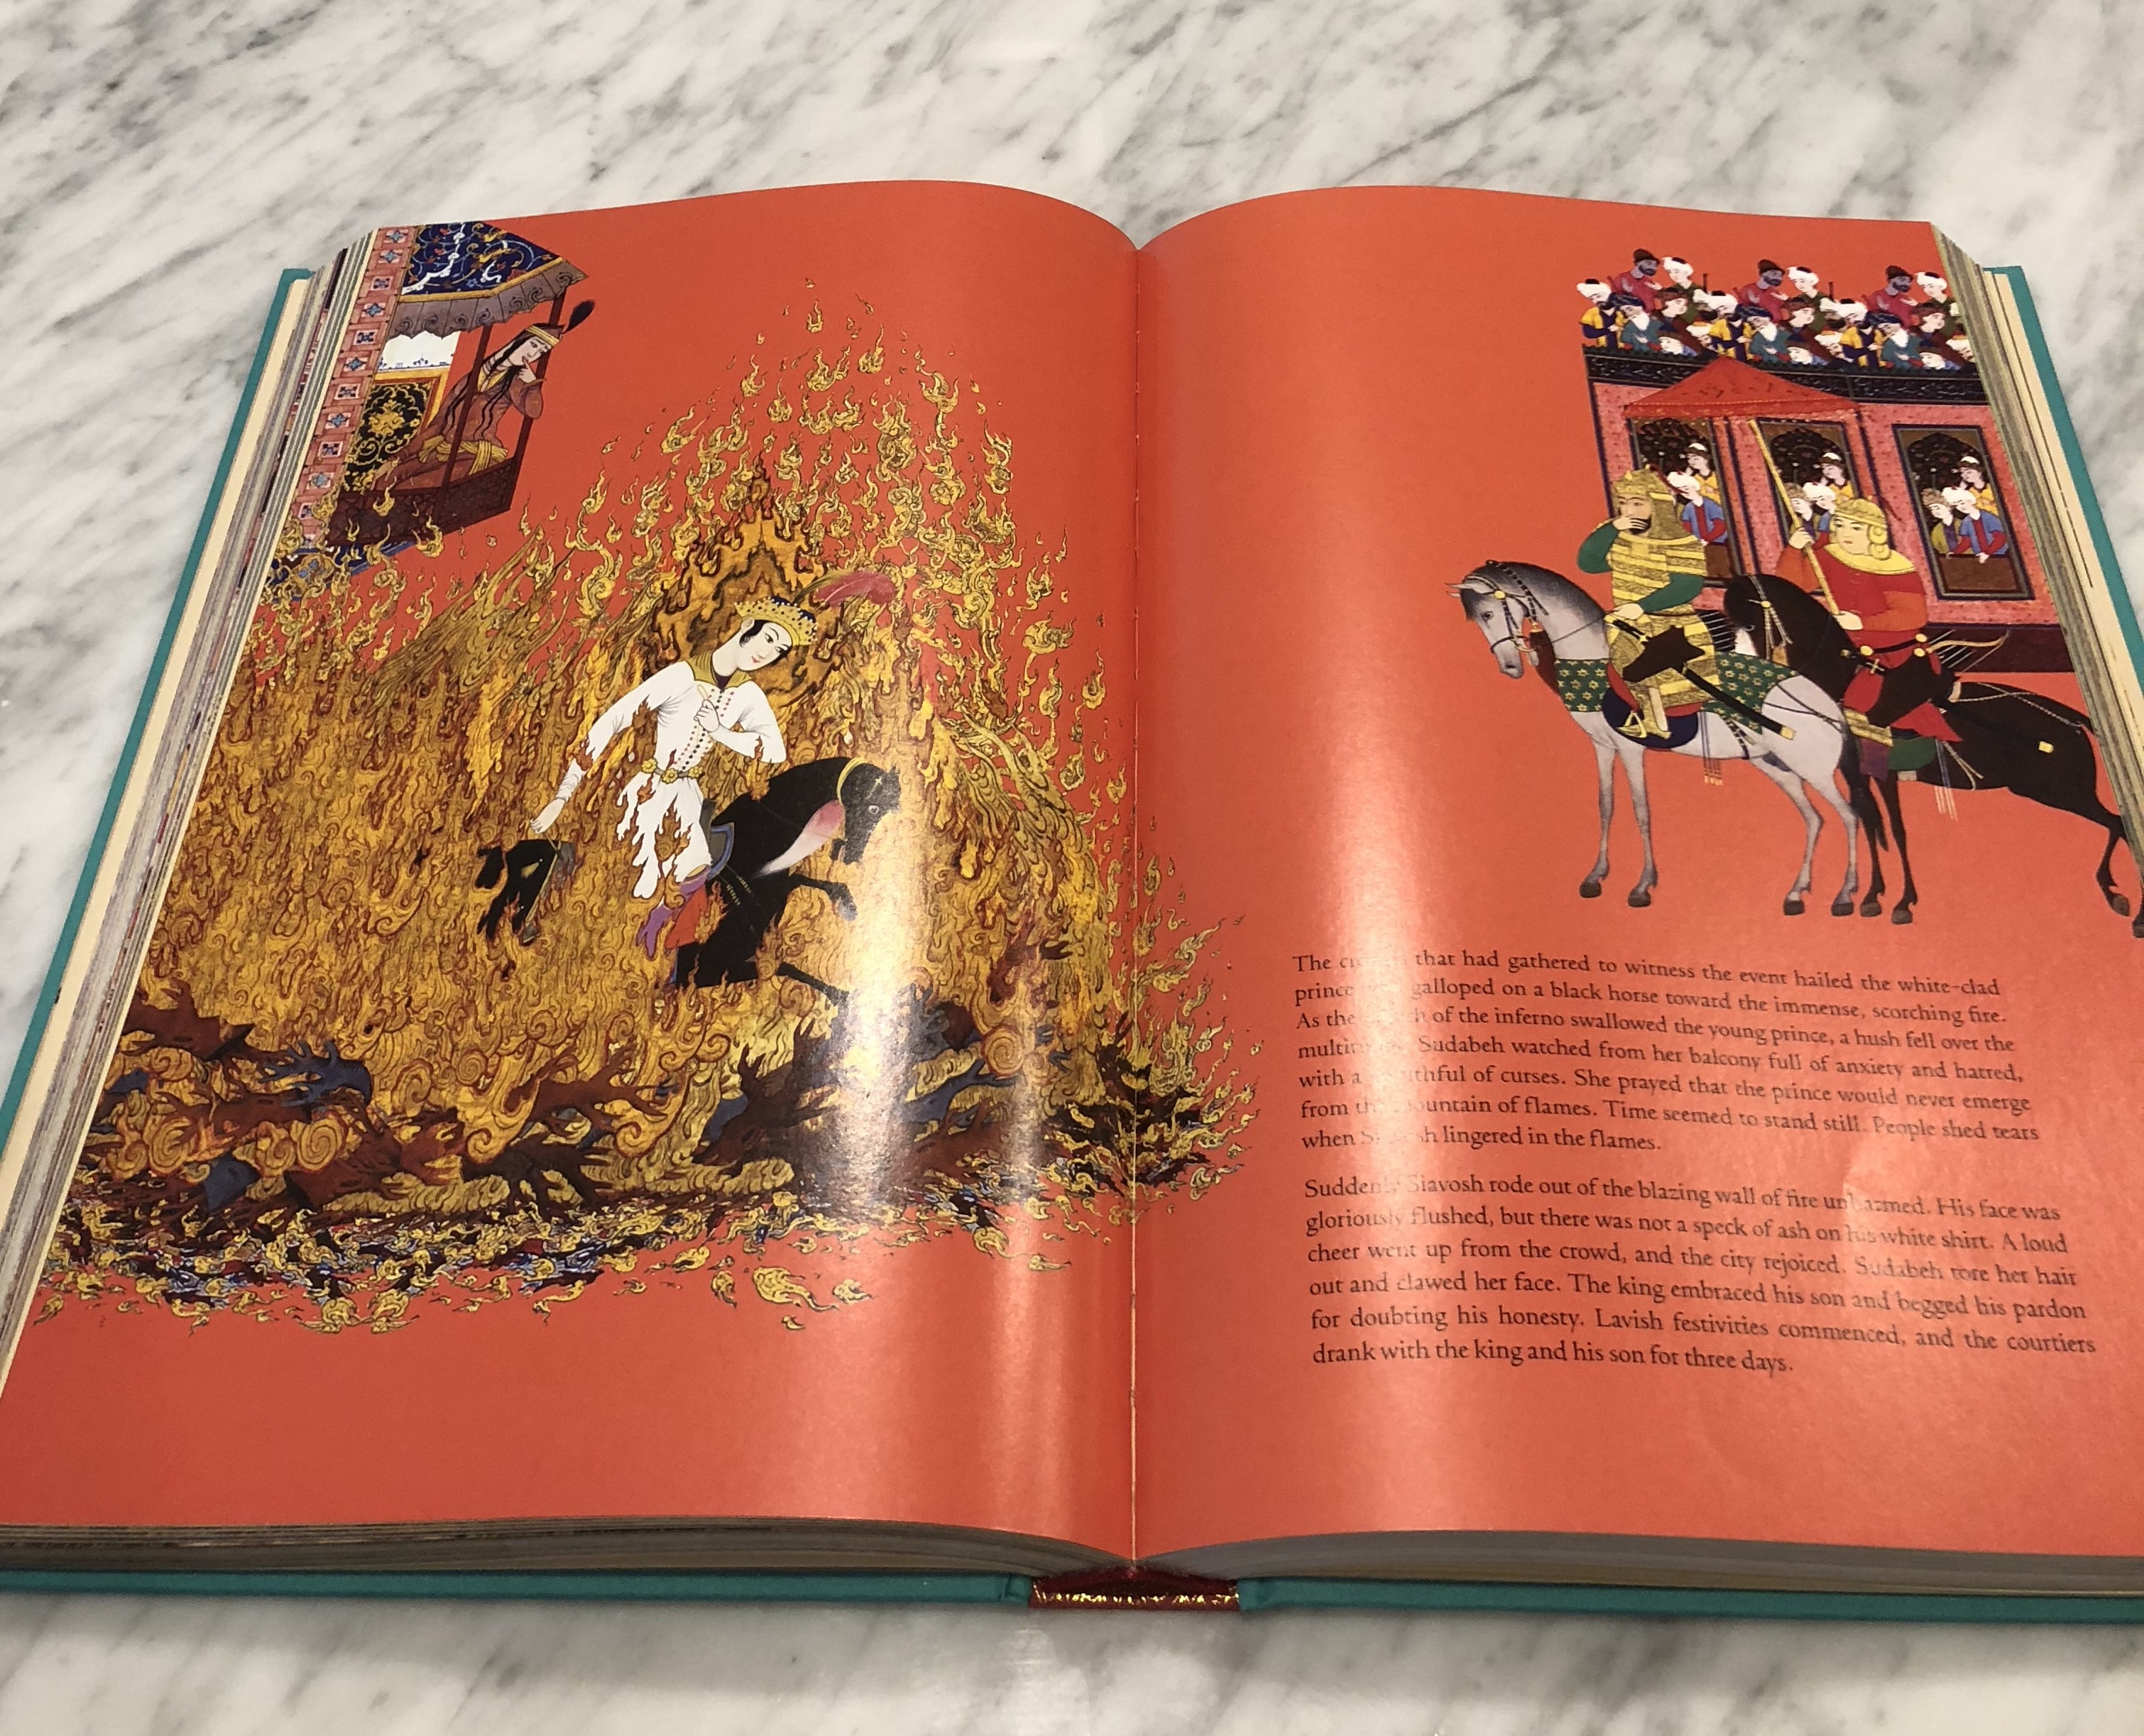 Shahnameh Fire Burning Page